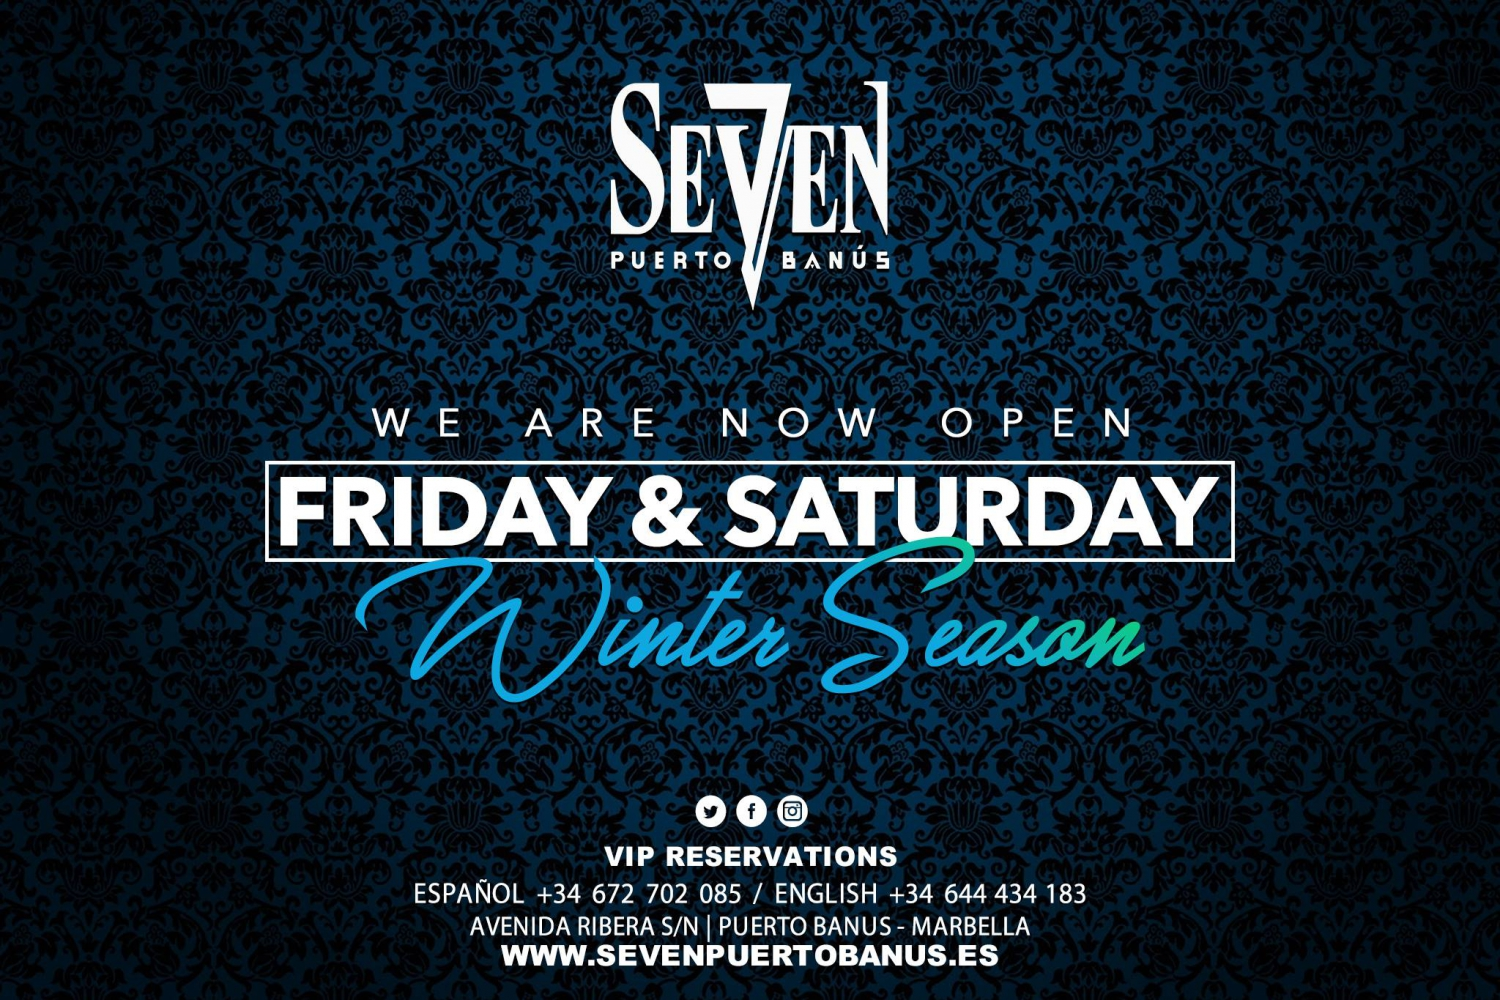 Winter Season at Seven